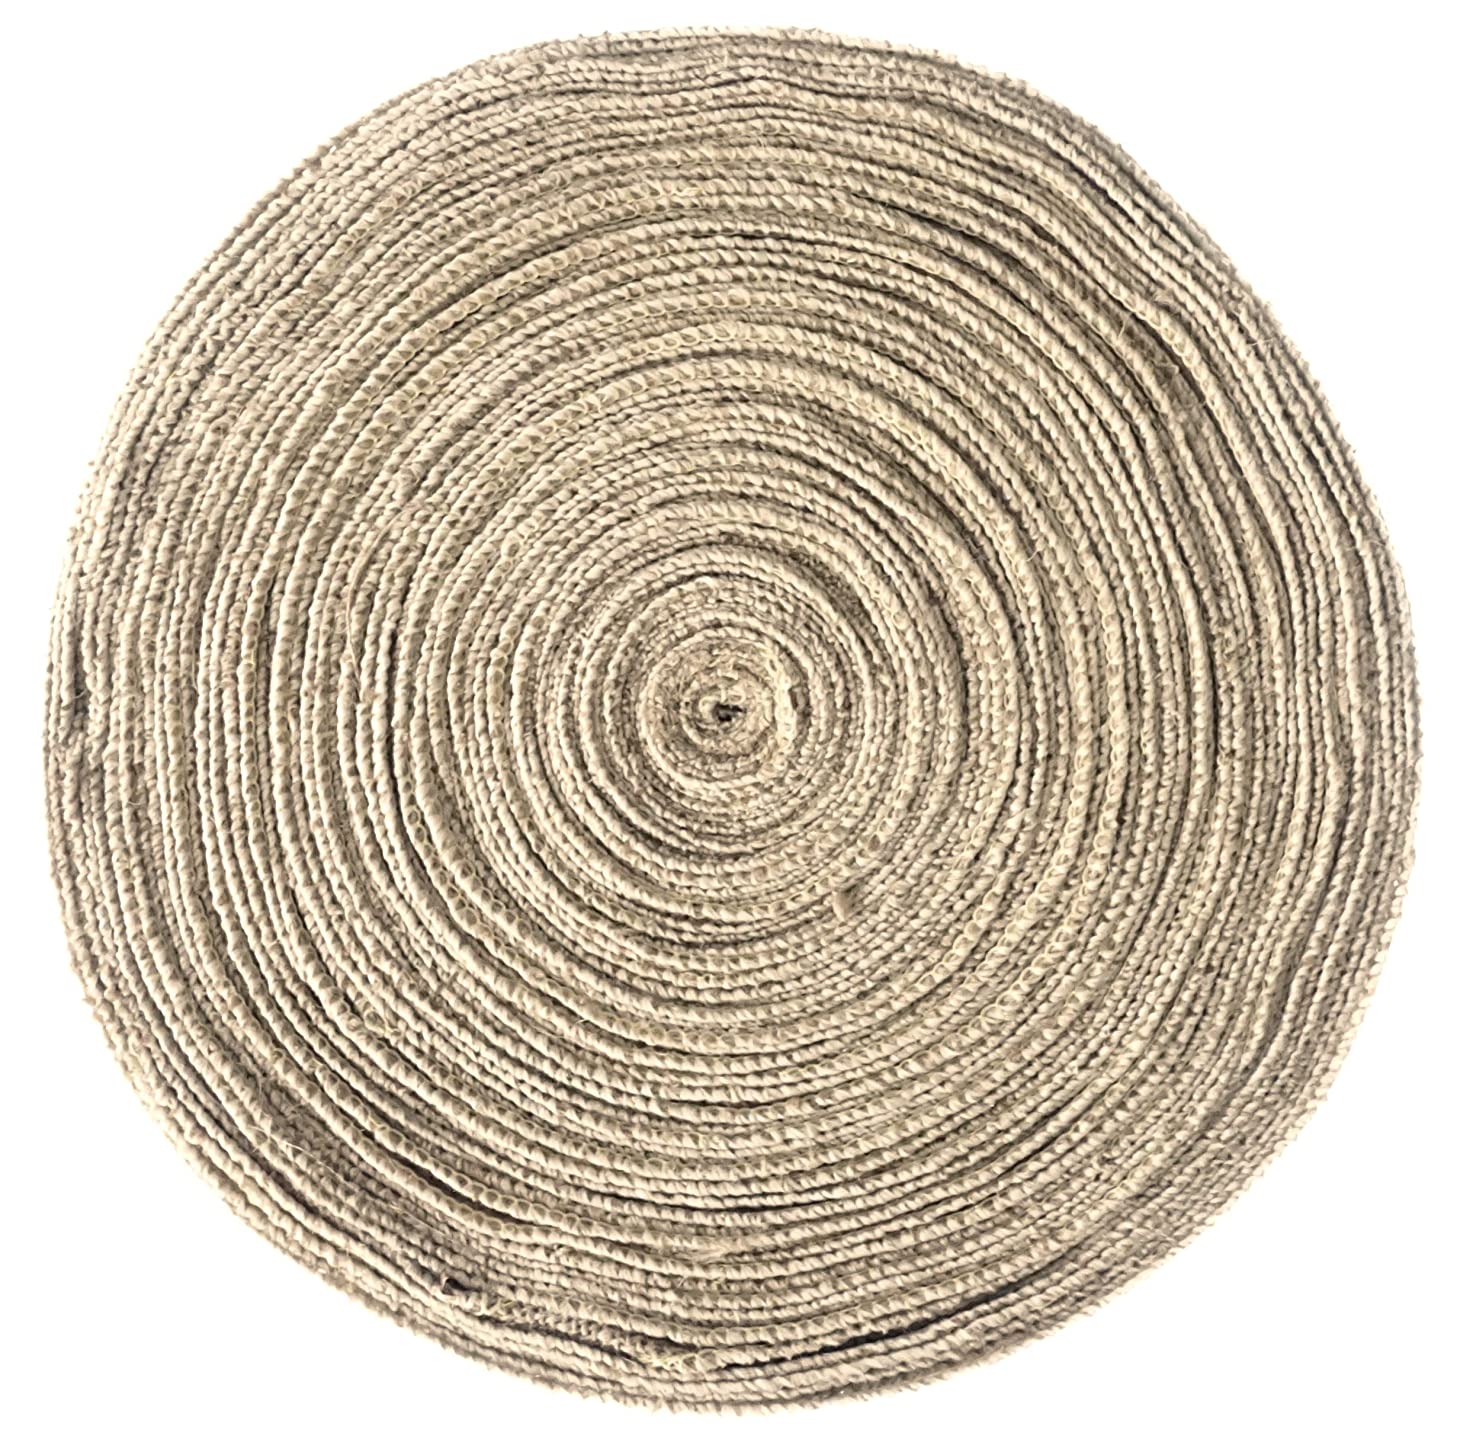 2 Inch Burlap Ribbon by the Roll. 50 Yards Jute Spool by Drency Ribbons